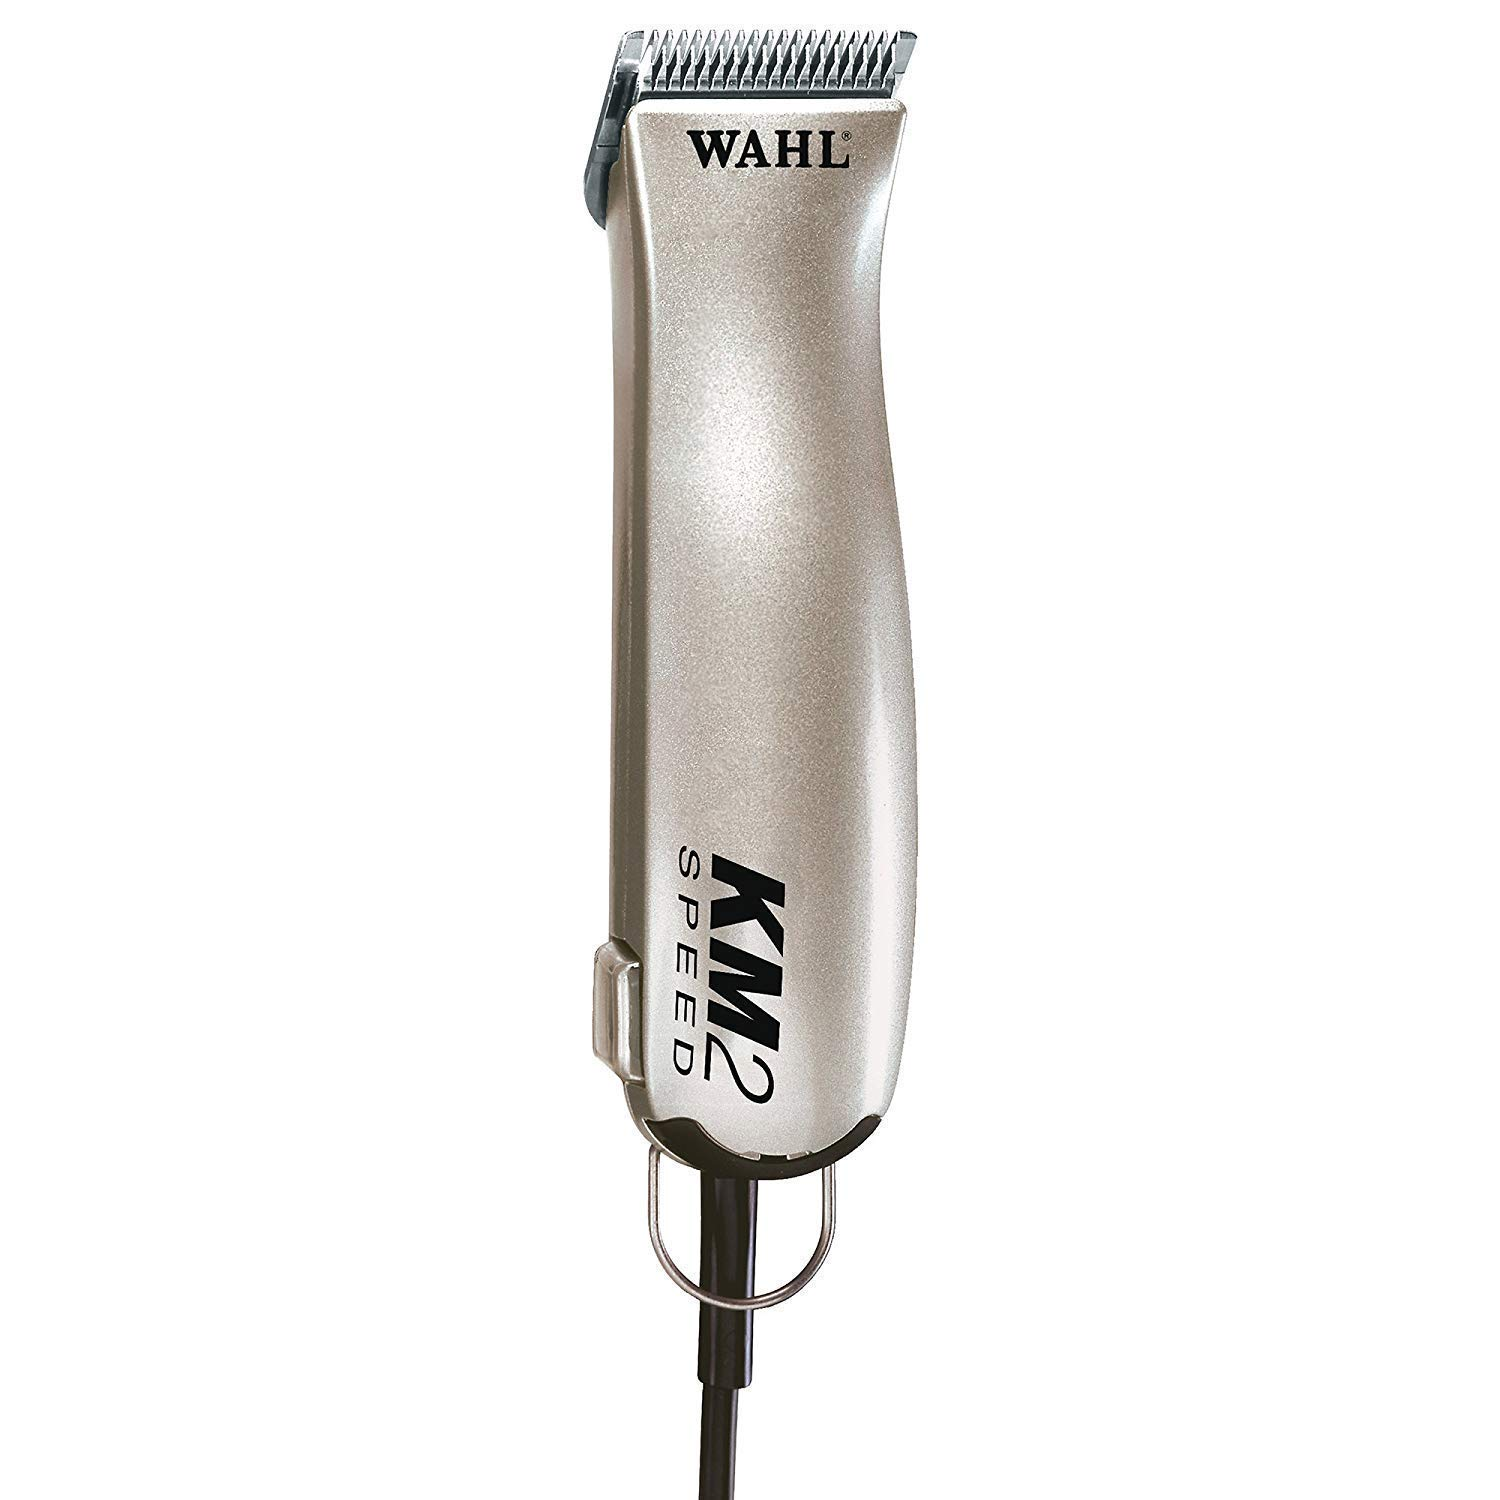 Wahl Professional Animal KM2 Deluxe 2-Speed Pet, Dog, and Horse Clipper Kit (#9757-1001) by Wahl Professional Animal